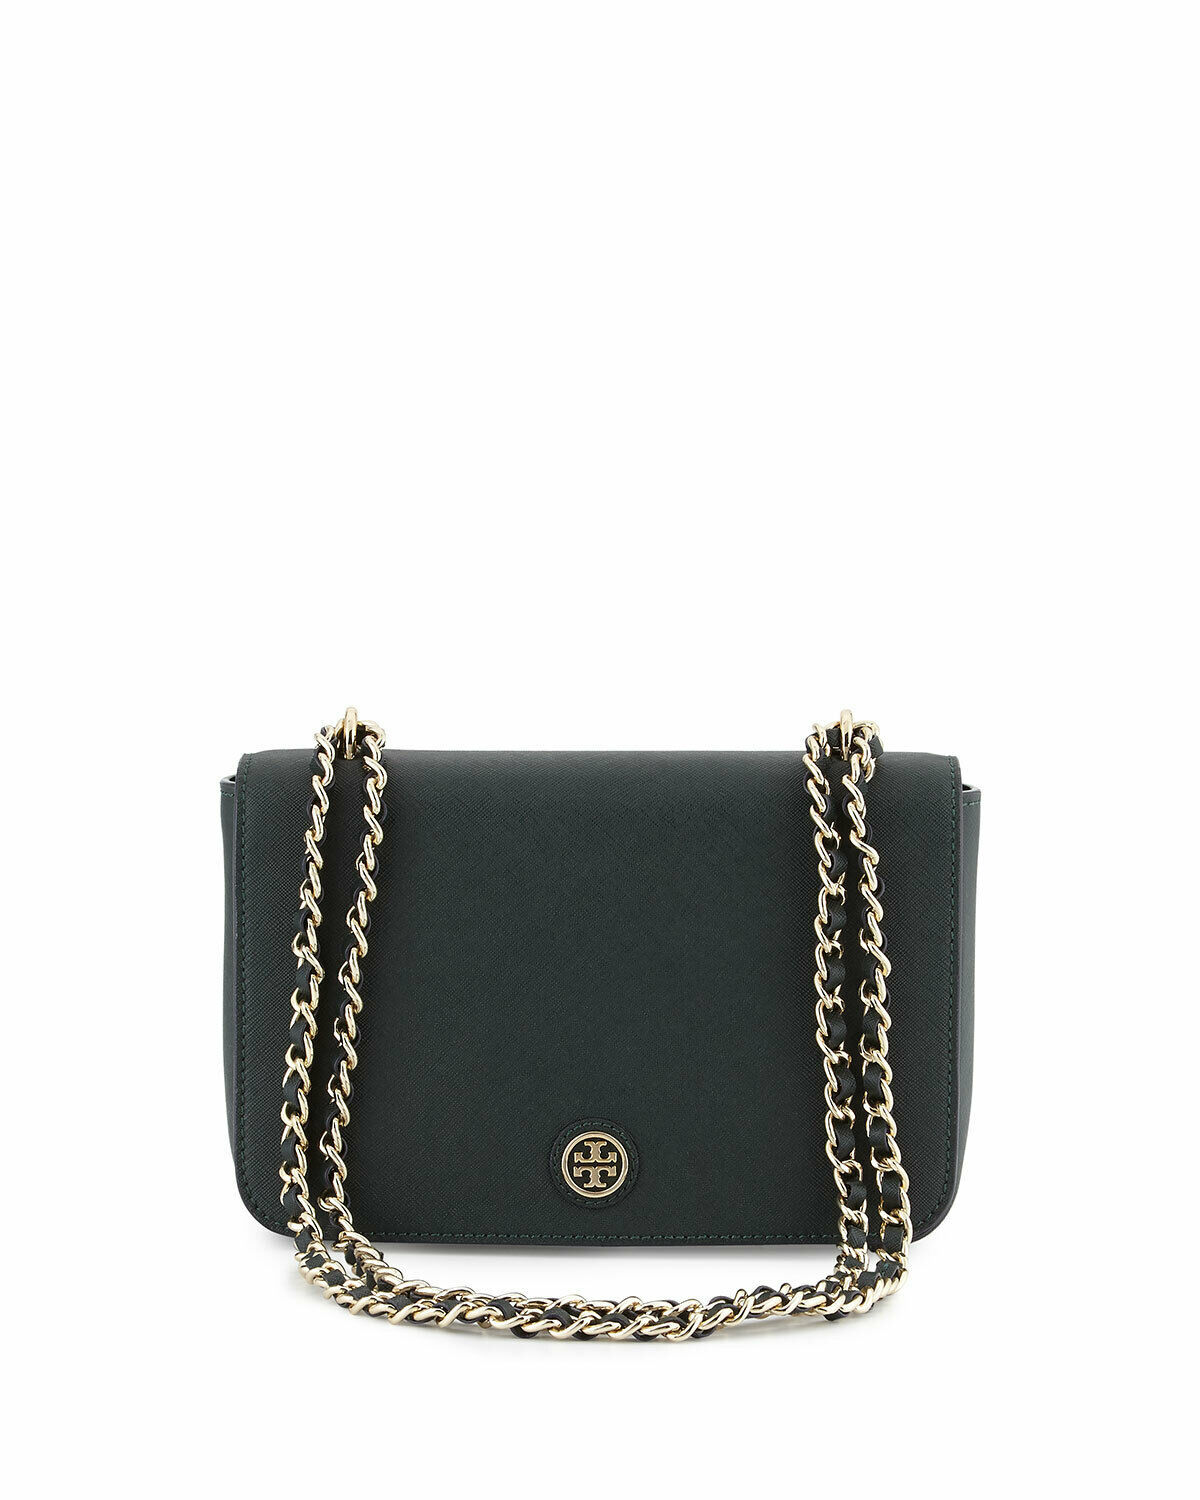 NWT Tory Burch Emerson Adjustable Shoulder Cross-body Bag Black 001